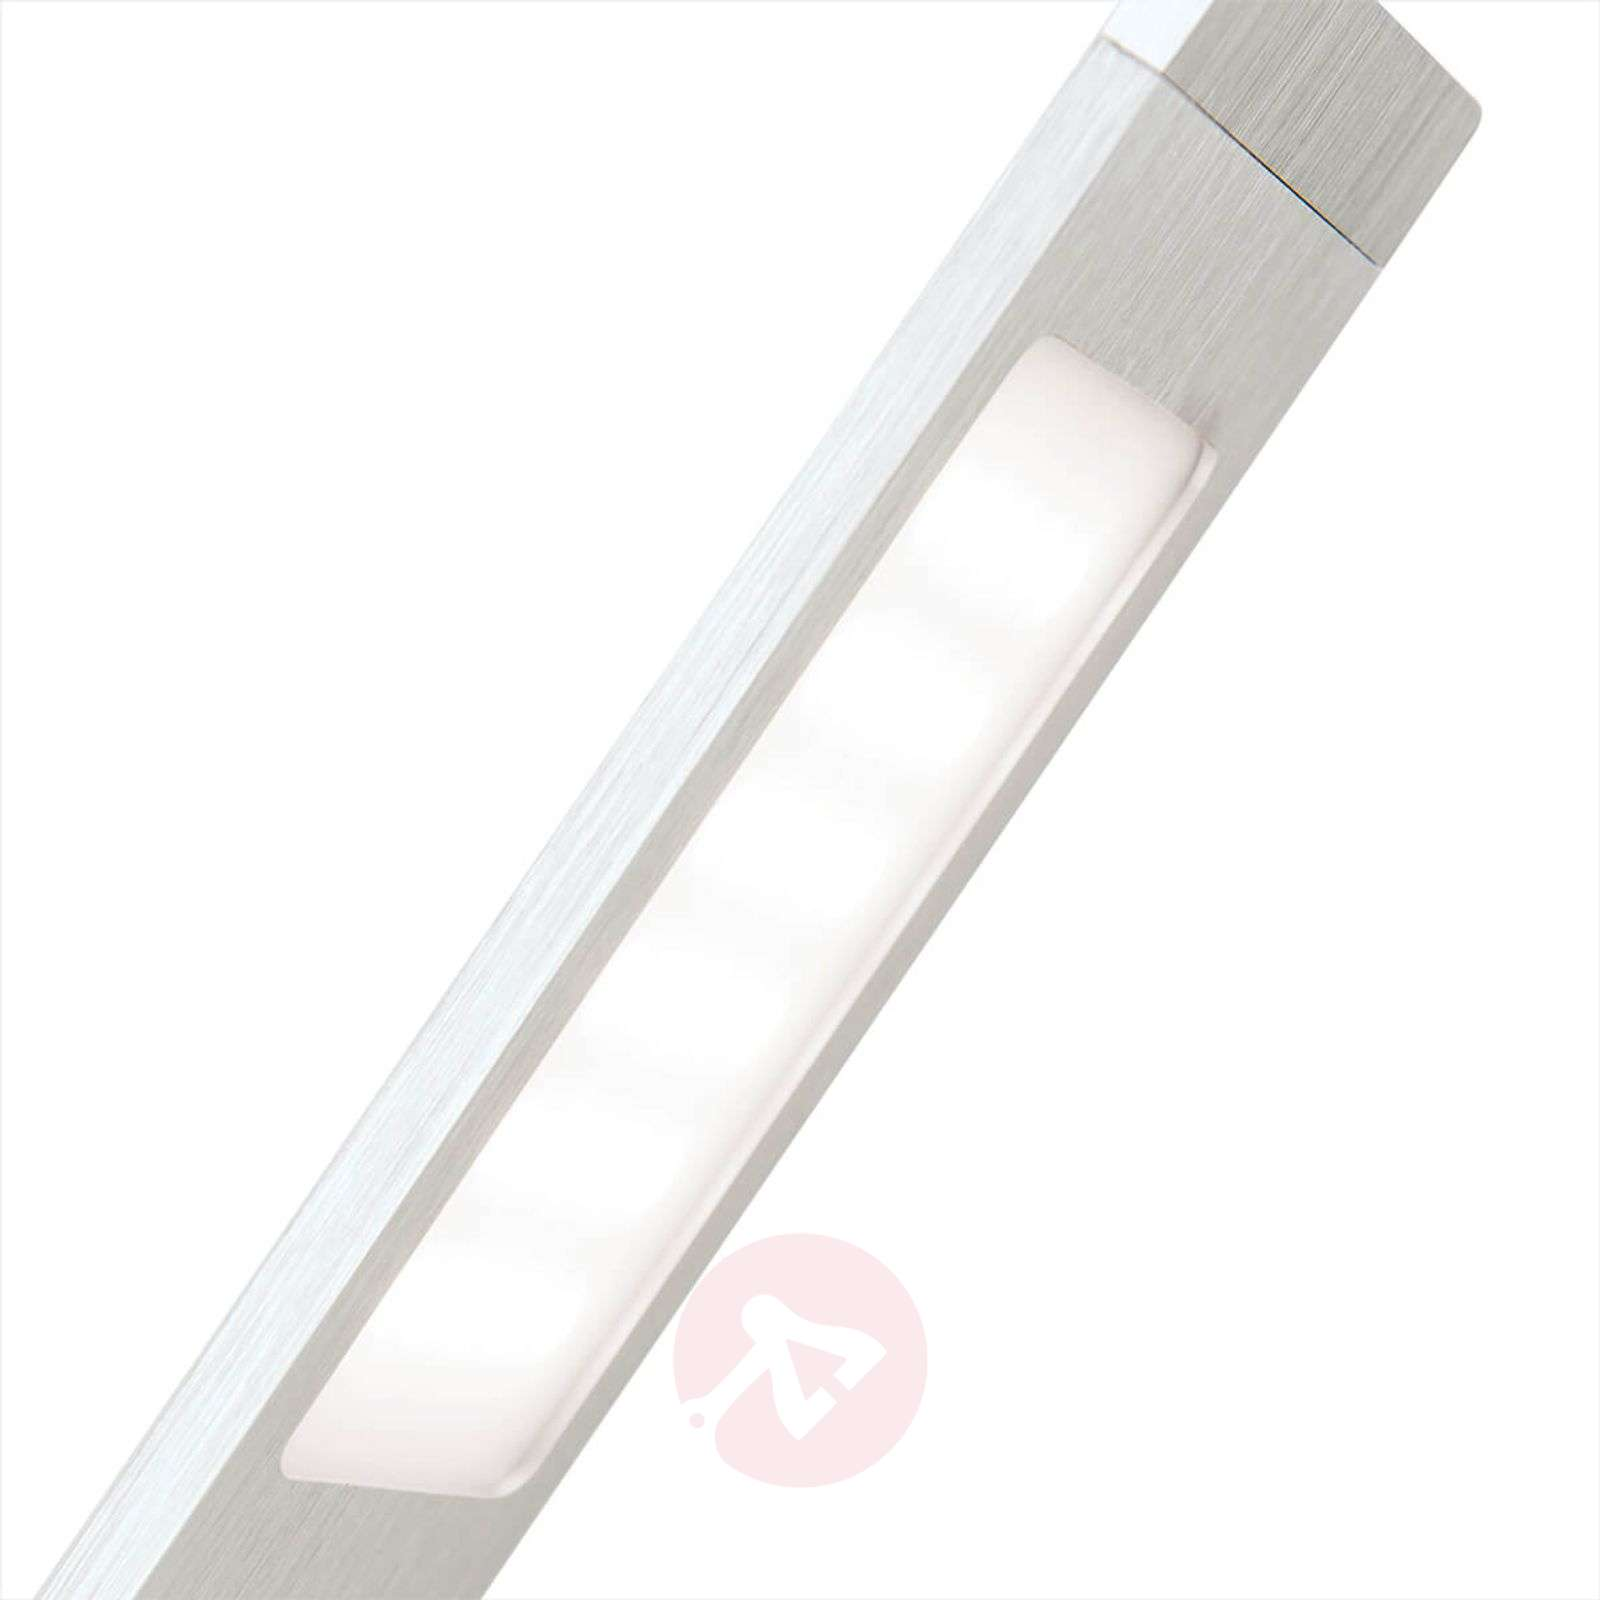 Lámpara de mesa LED Neville plegable-7255321X-01